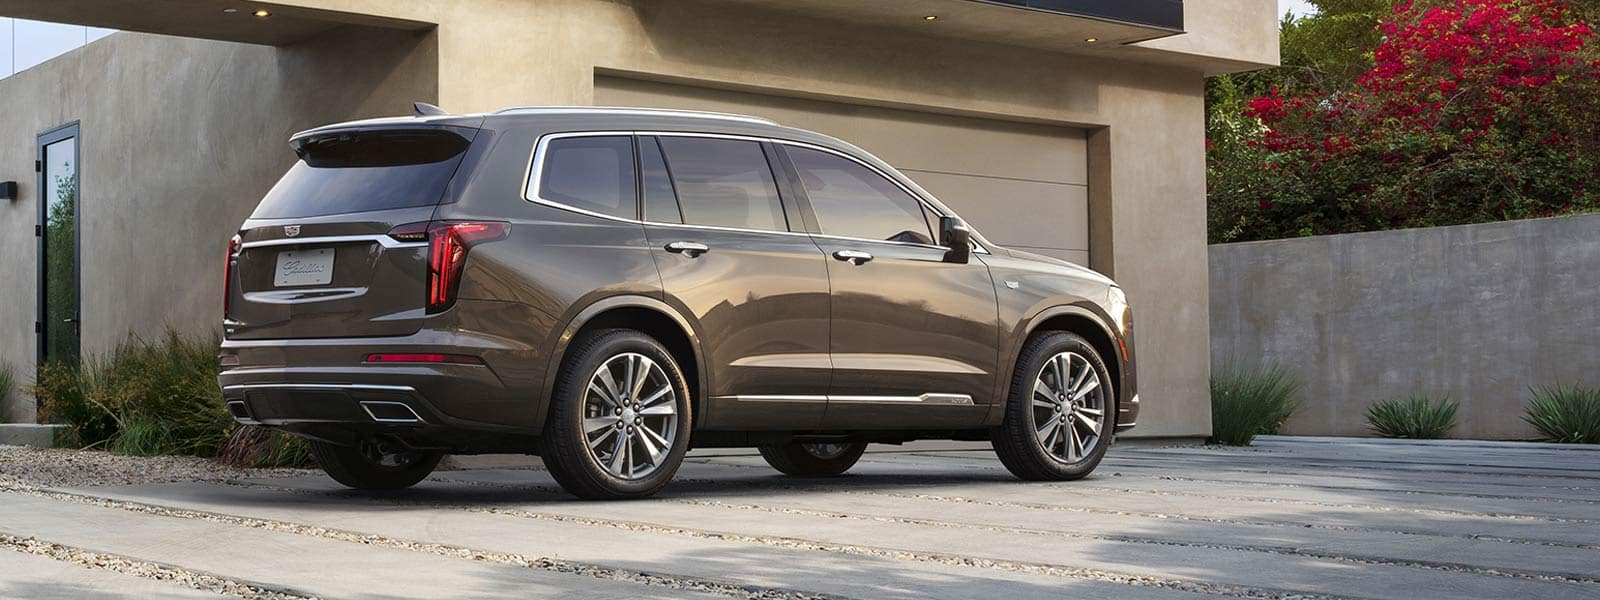 Buy or lease new 2021 Cadillac XT6 in Thornhill Ontario